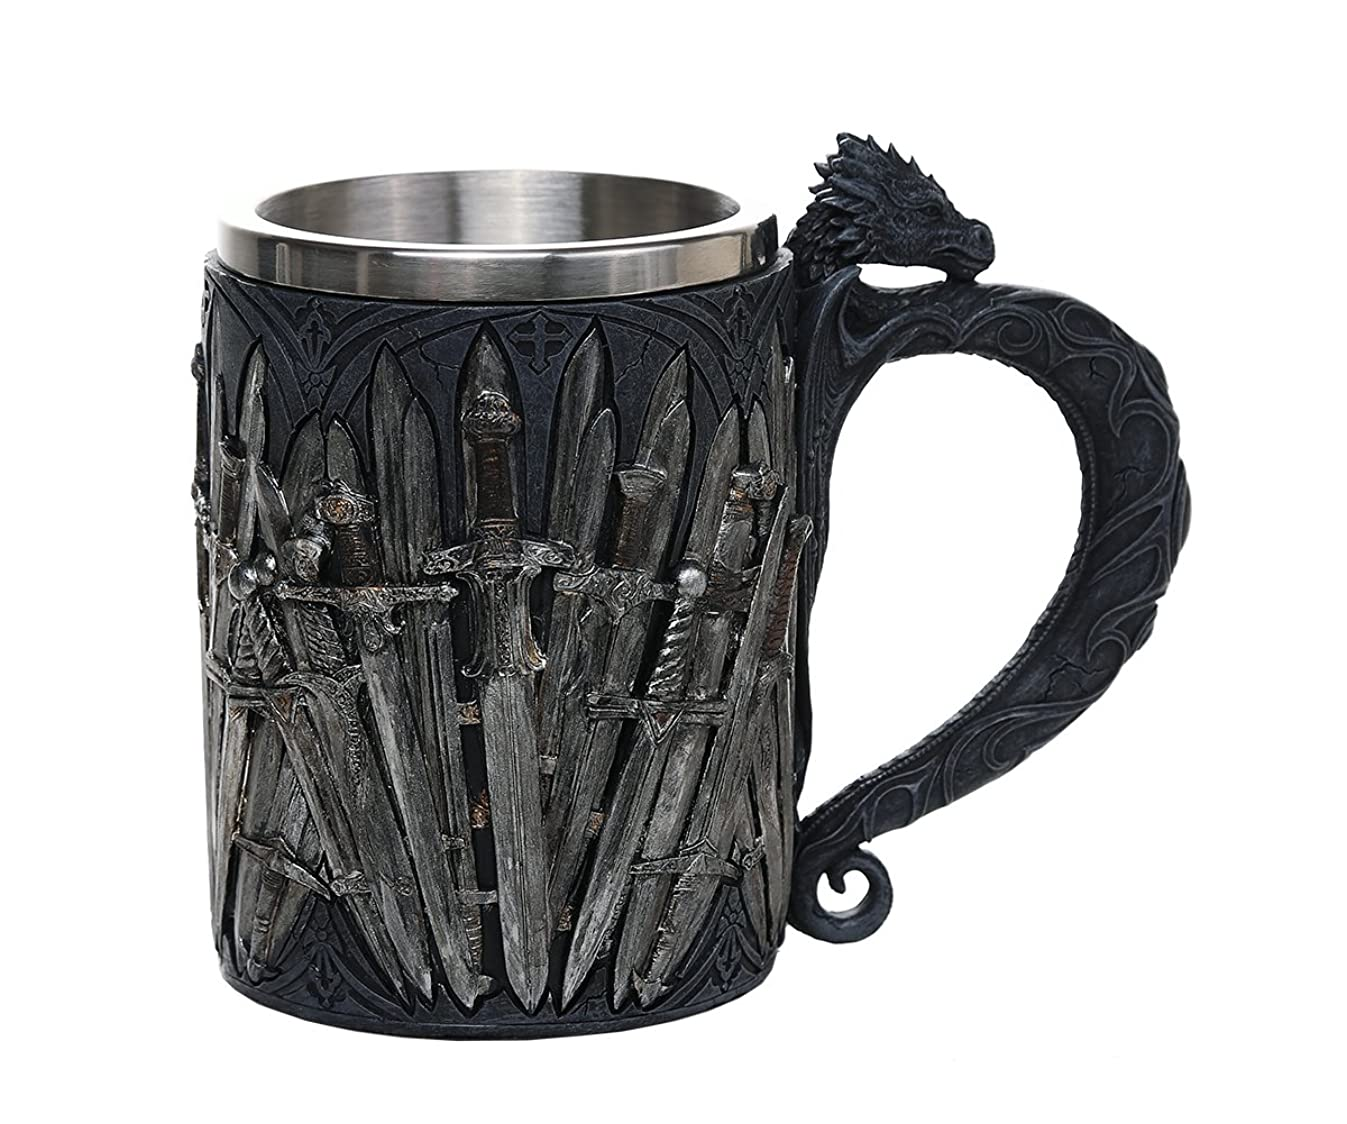 Pacific Giftware Legends of The Swords Game of Sword Thrones Dragon Mug Tankard 13oz